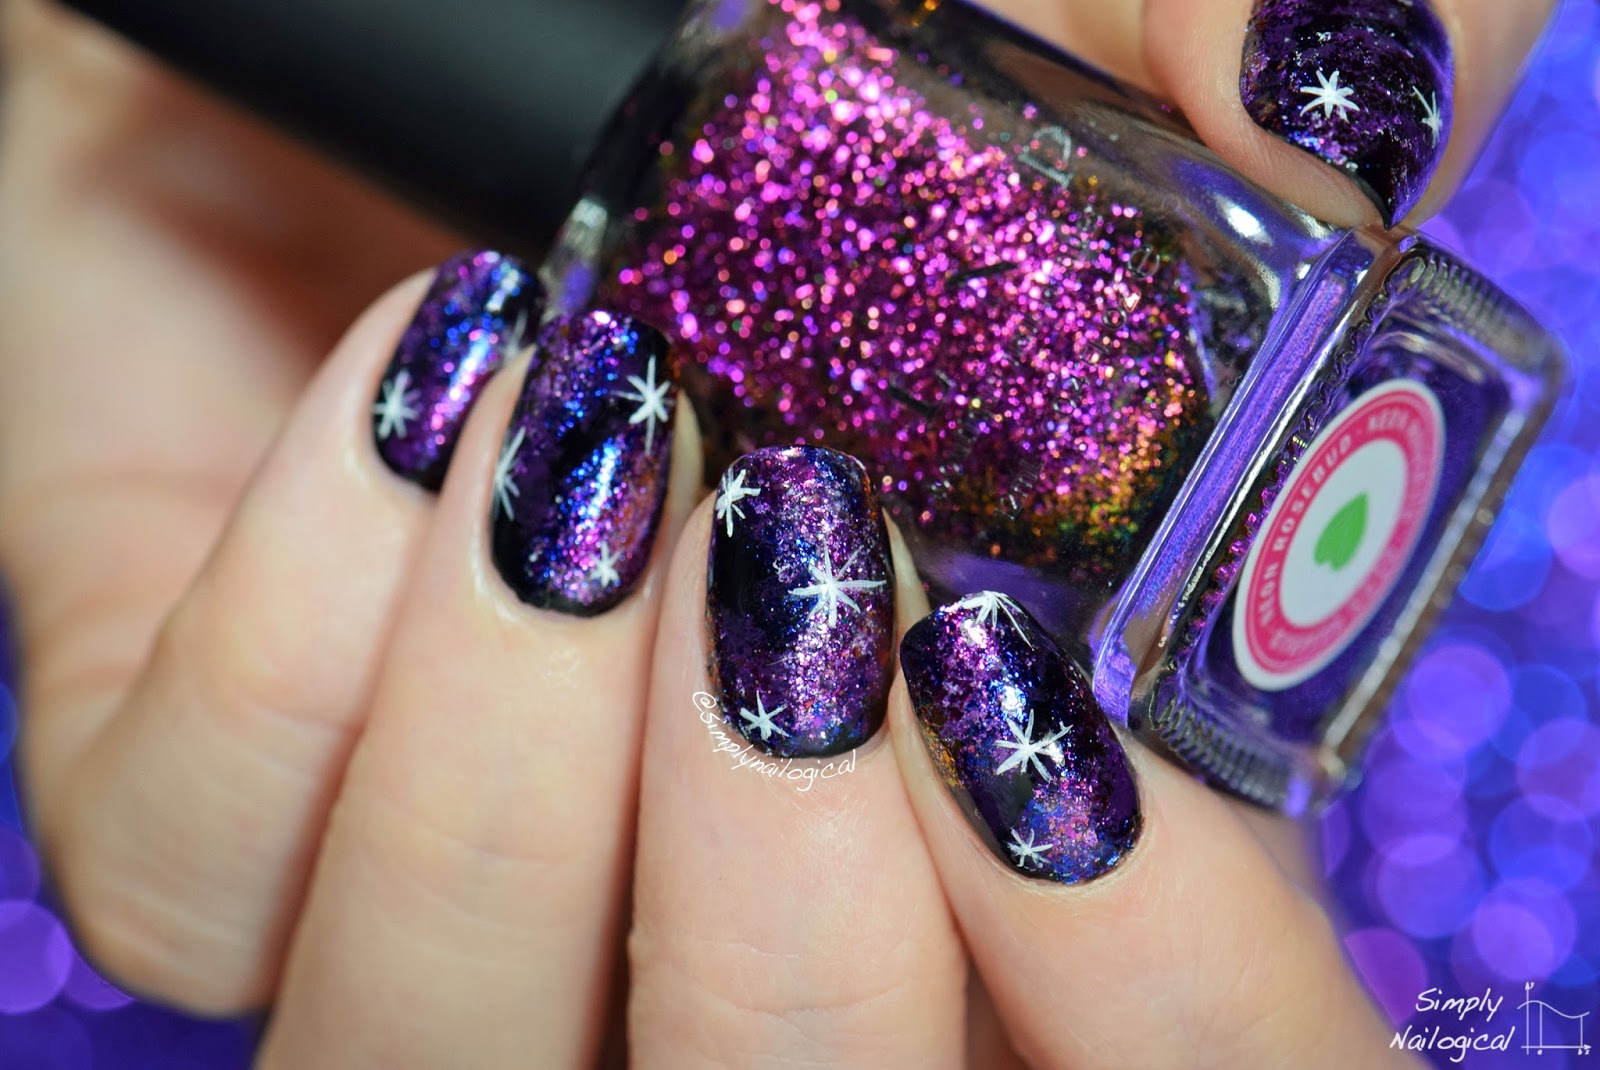 Simply Nailogical: Dark galaxy nails using ultra-chrome flakies